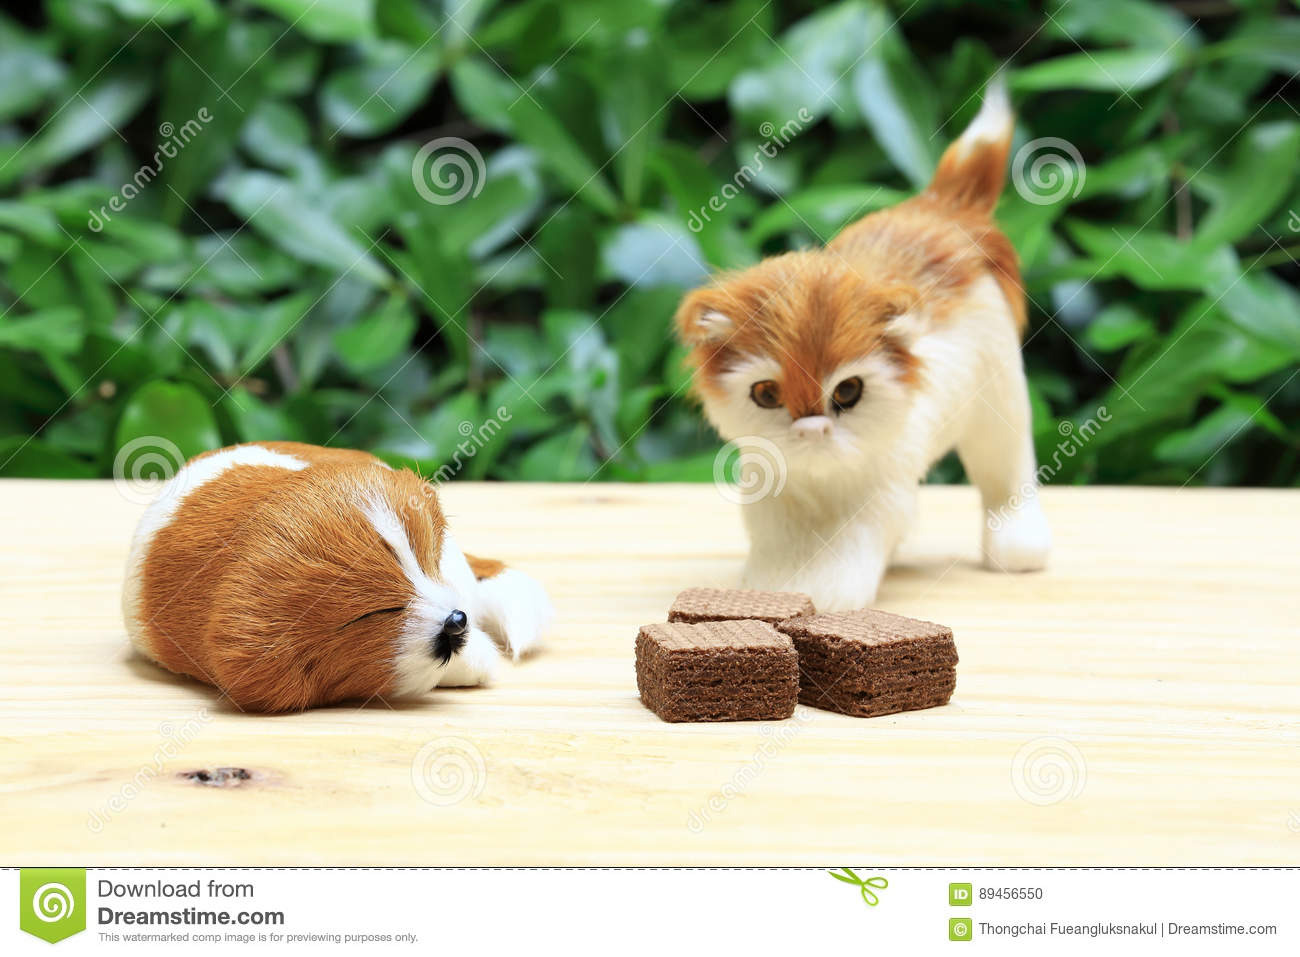 Sleeping dog and a cat look the wafer with chocolate cream.